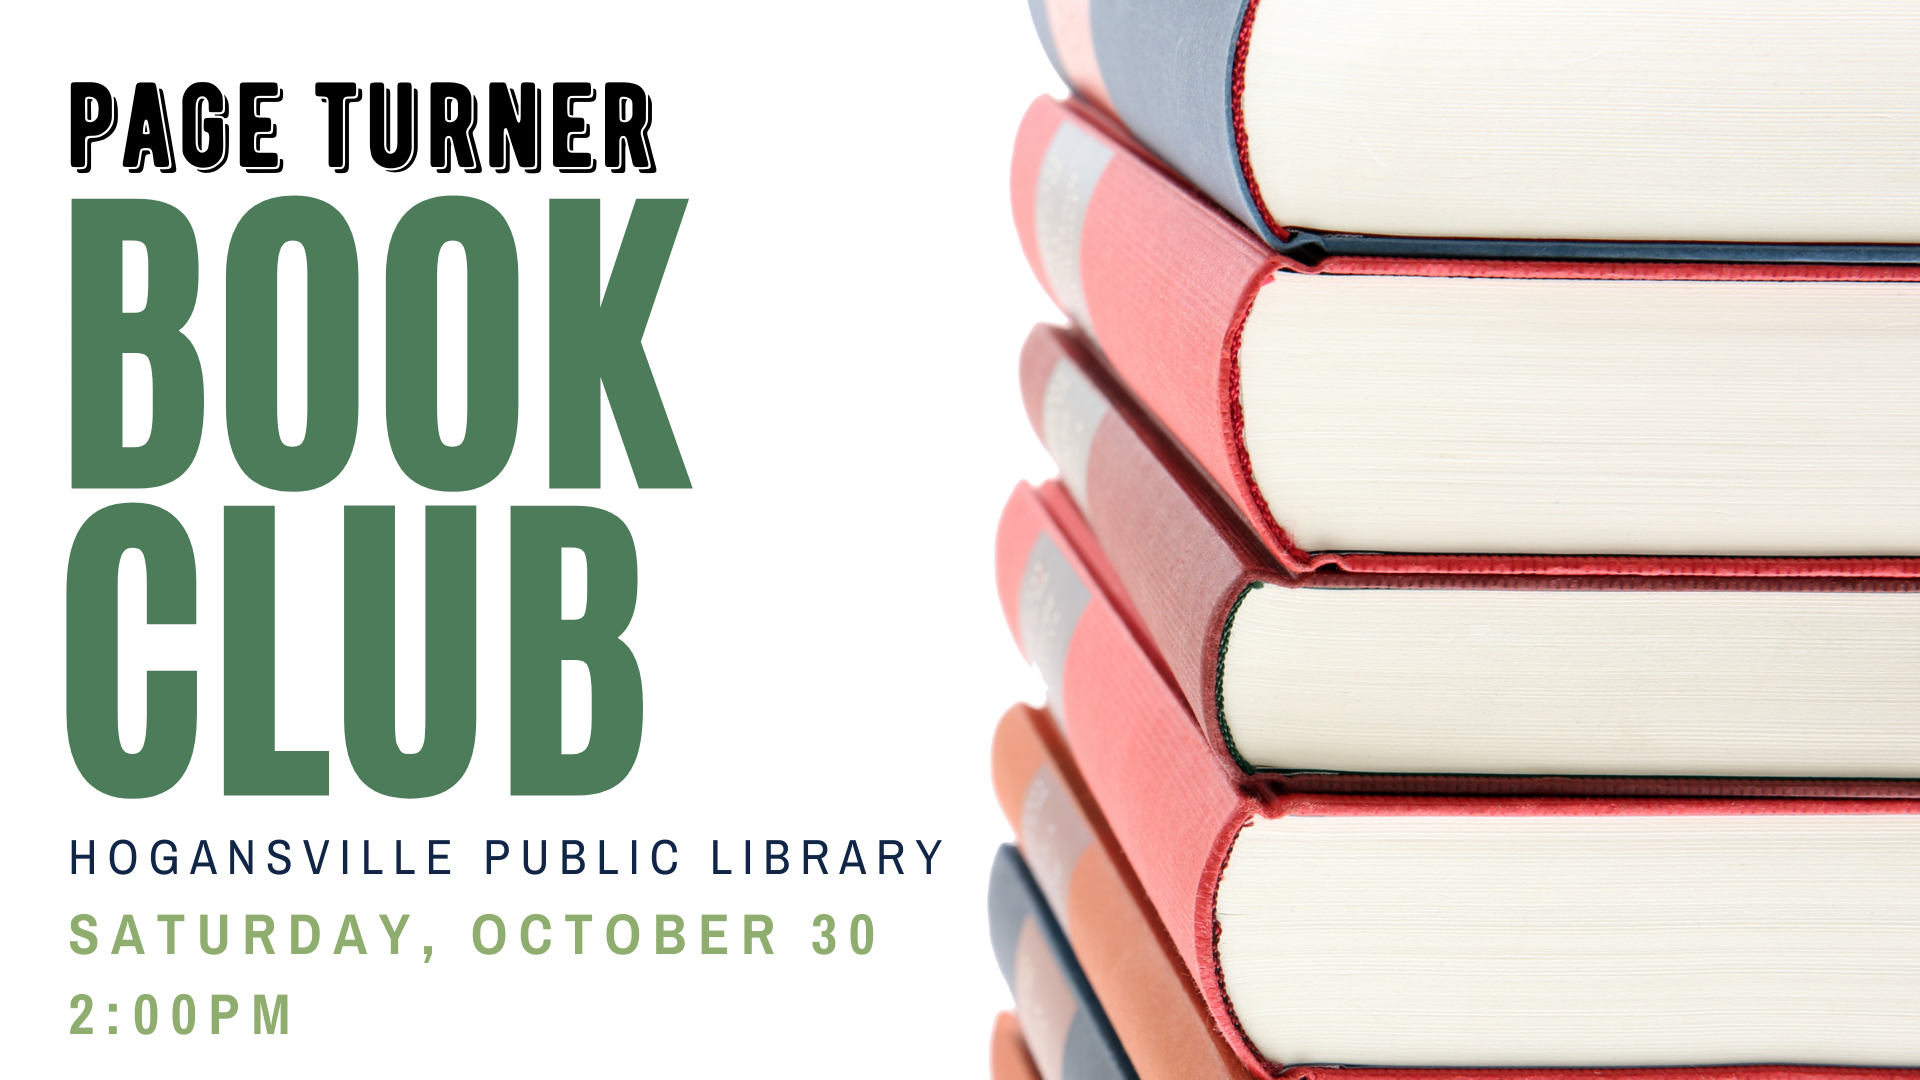 What have you been reading lately? Drop by the Hogansville Library on October 30 at 2 PM to share your latest reads. Open to all adults, no library card/registration required. Light refreshments provided.